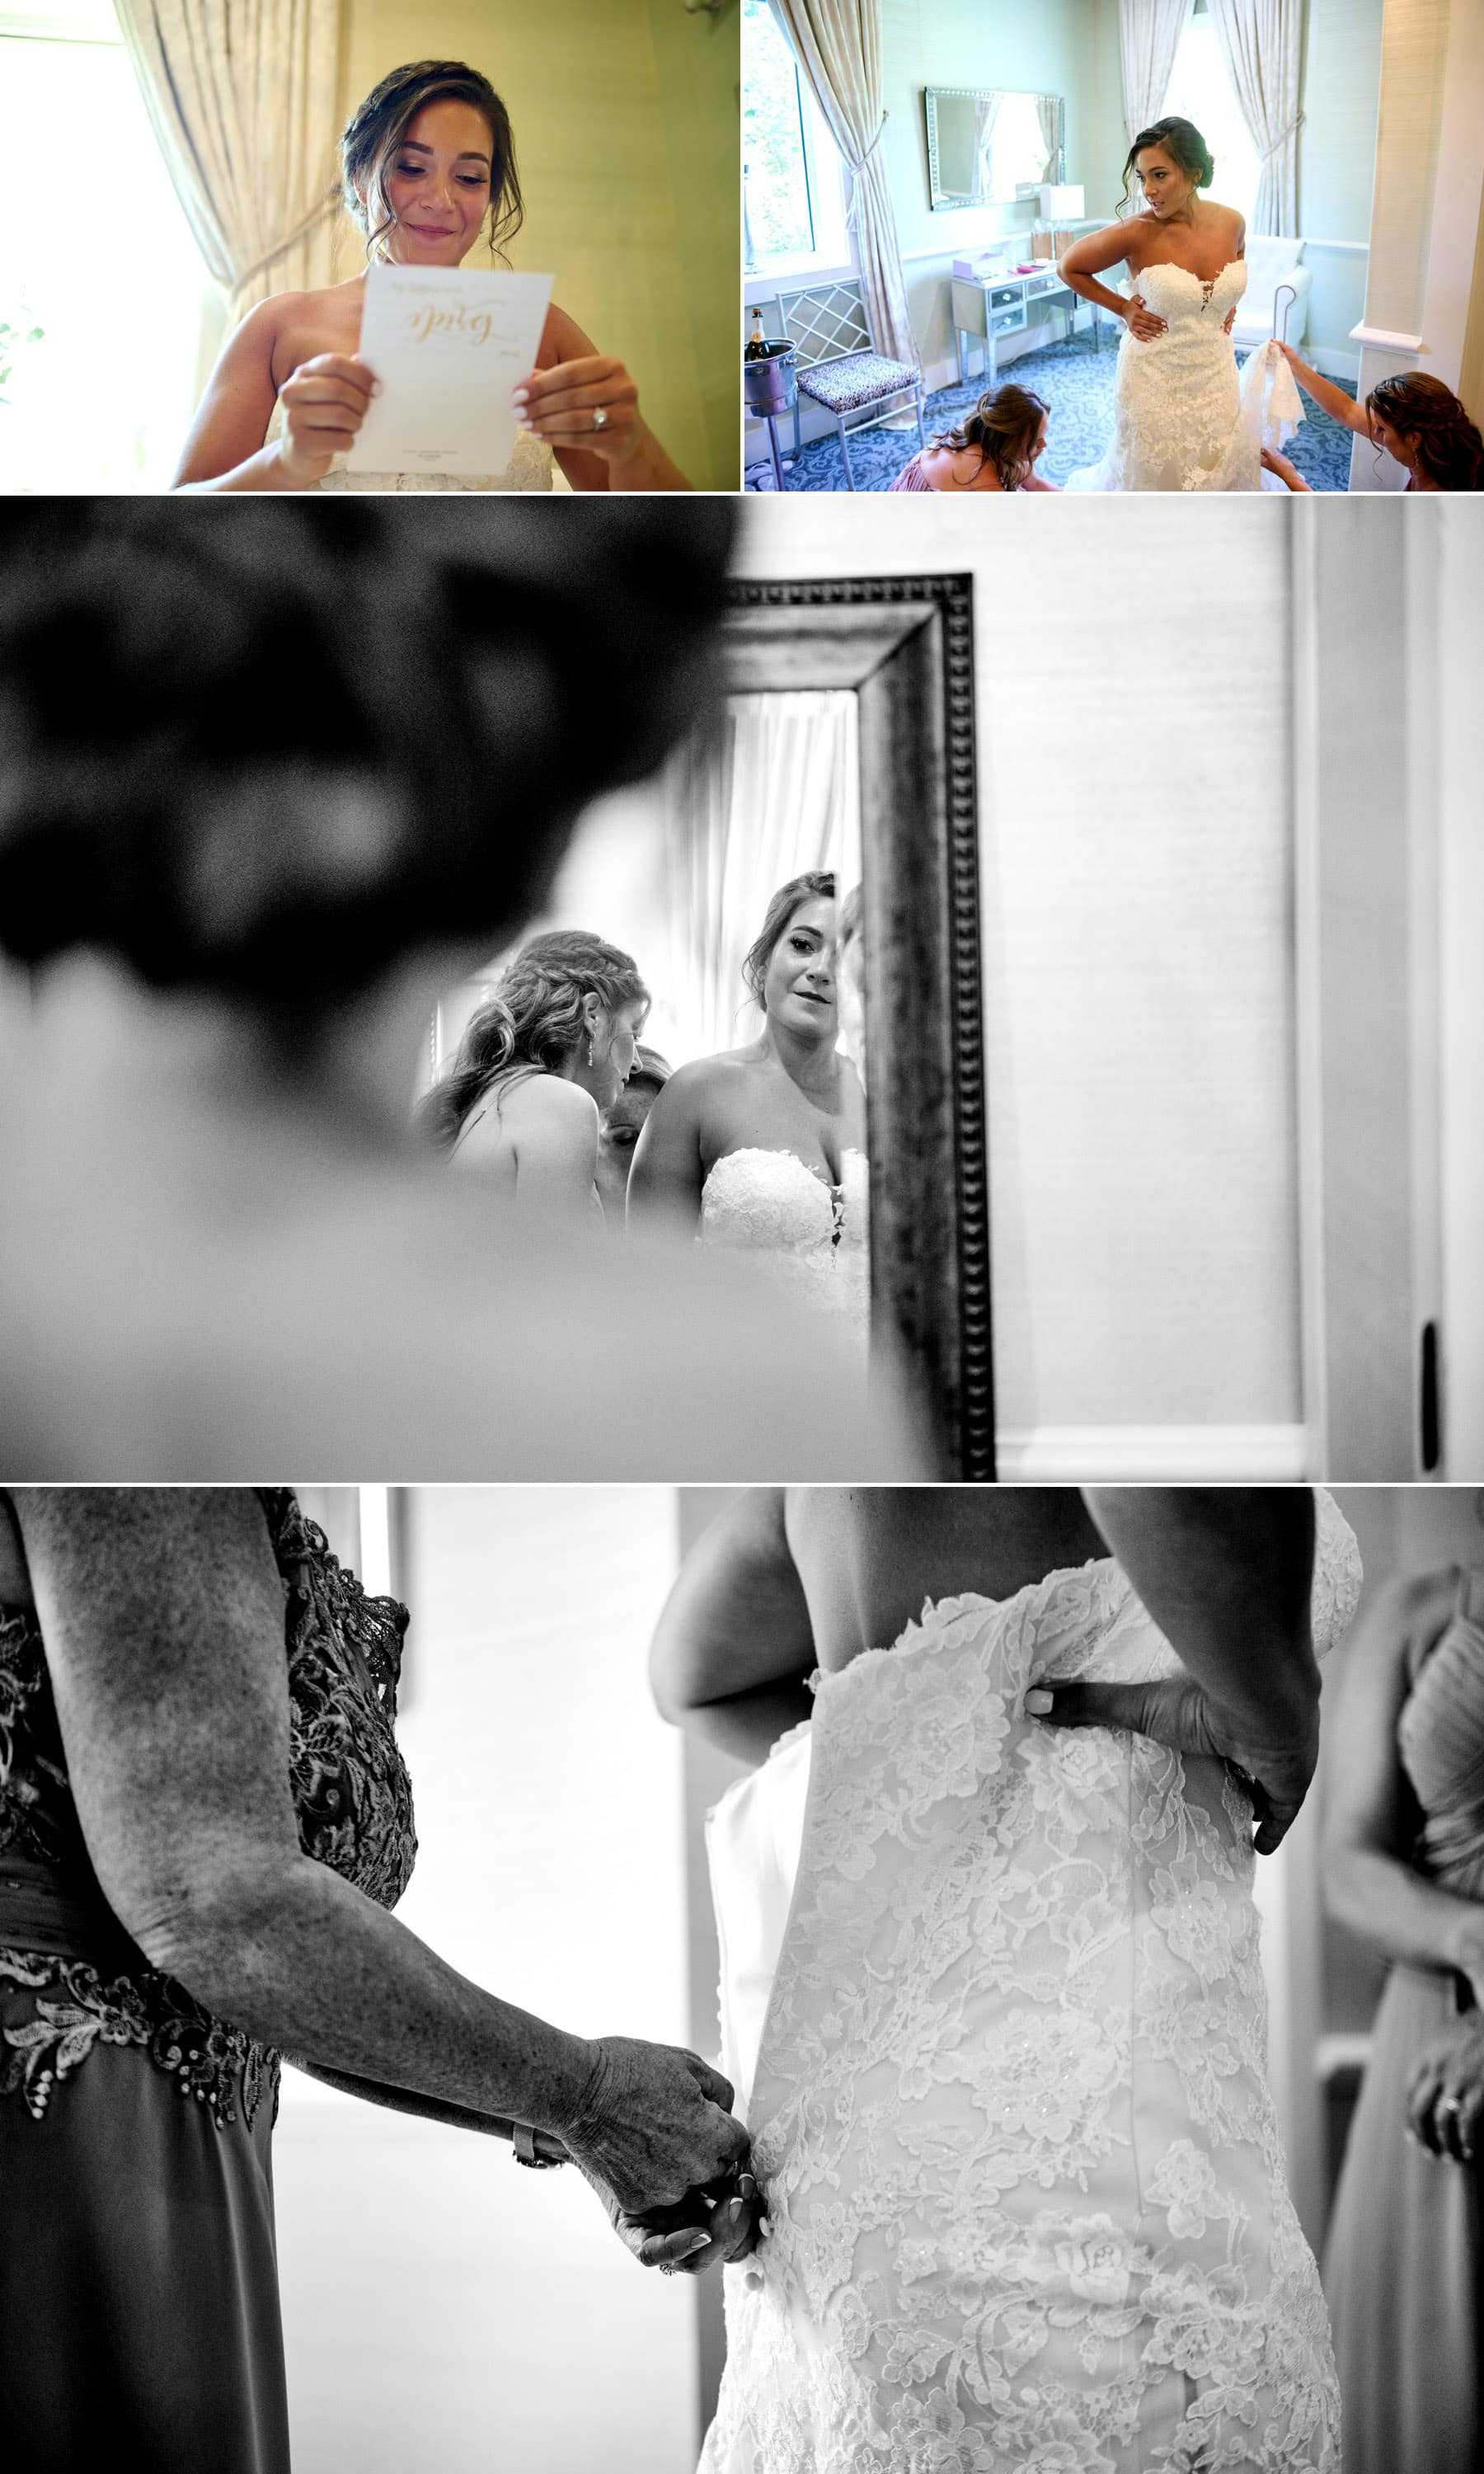 getting ready in the bridal suite at The Farmhouse